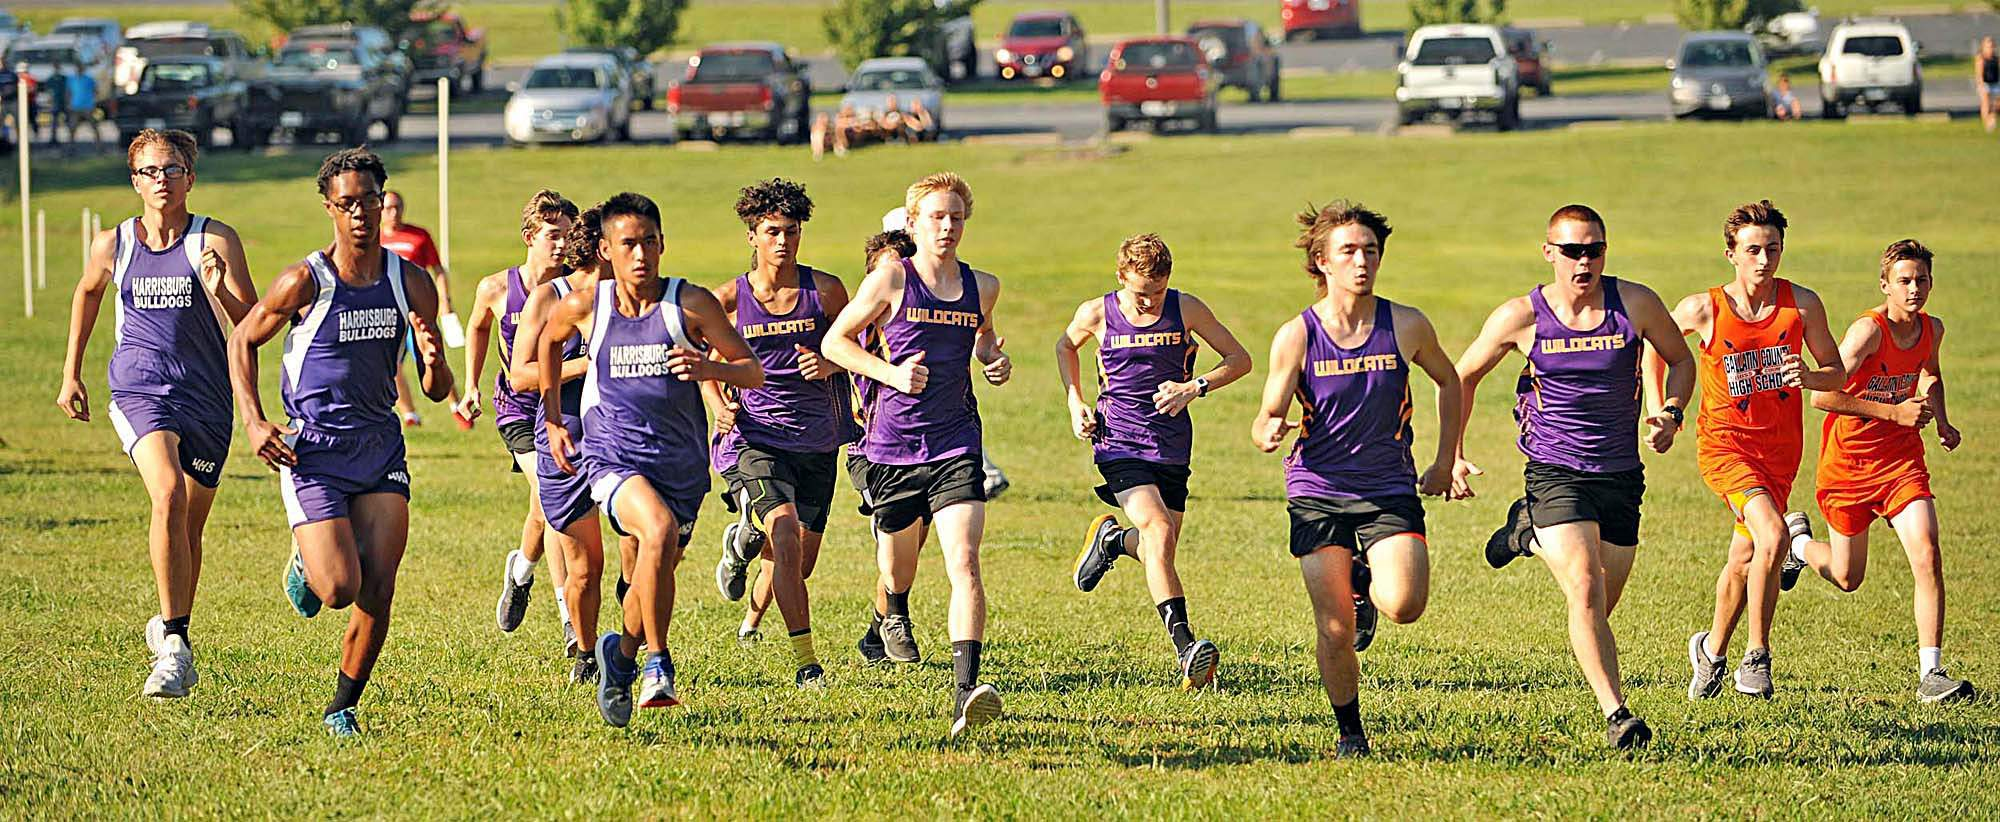 JEFF JONES Runners from Harrisburg High School and Carrier Mills Stonefort High School along with schools from Galatia, Gallatin County, Massac County cross the starting line at the cross country course at Southeastern Illinois College Tuesday evening.